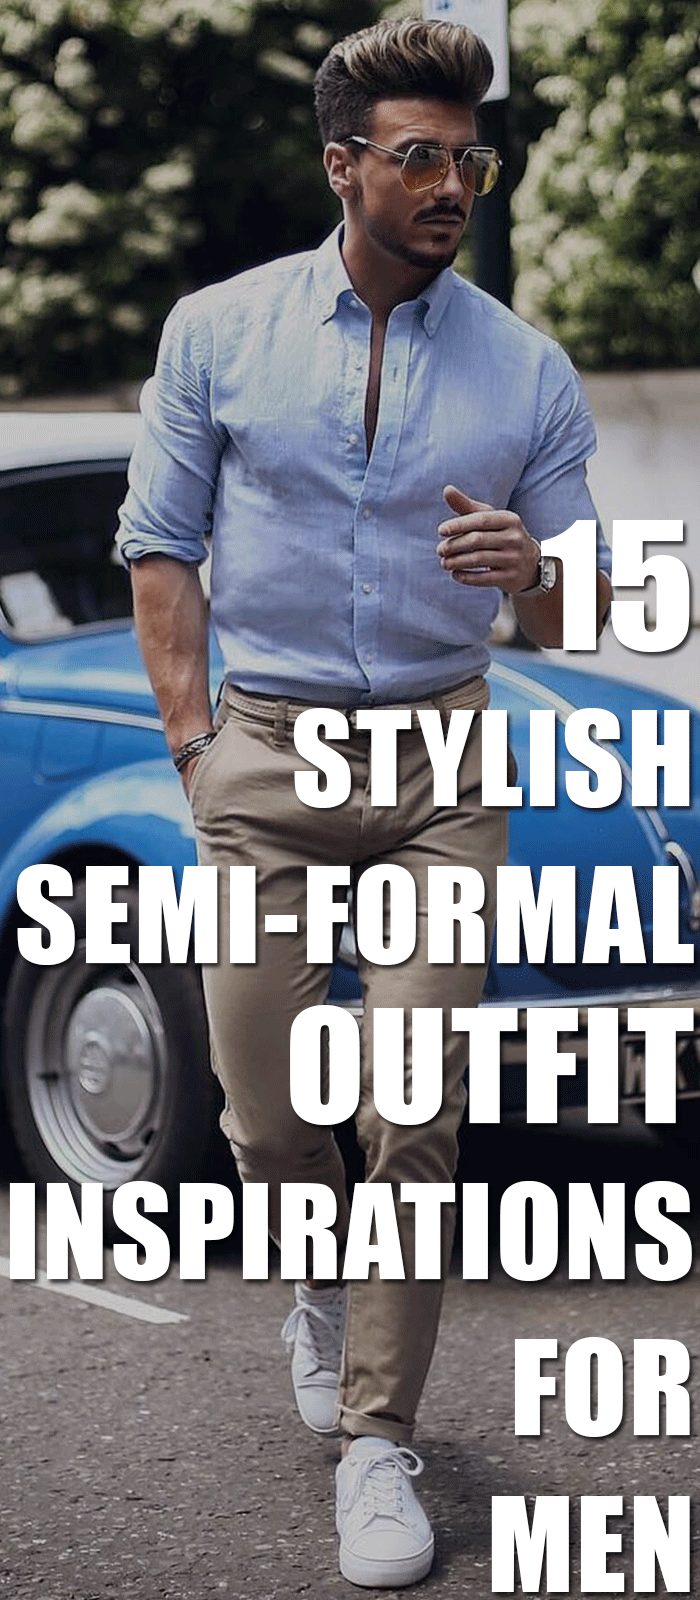 ecd855d45c 15 Stylish Semi-Formal Outfit Inspirations For Men.